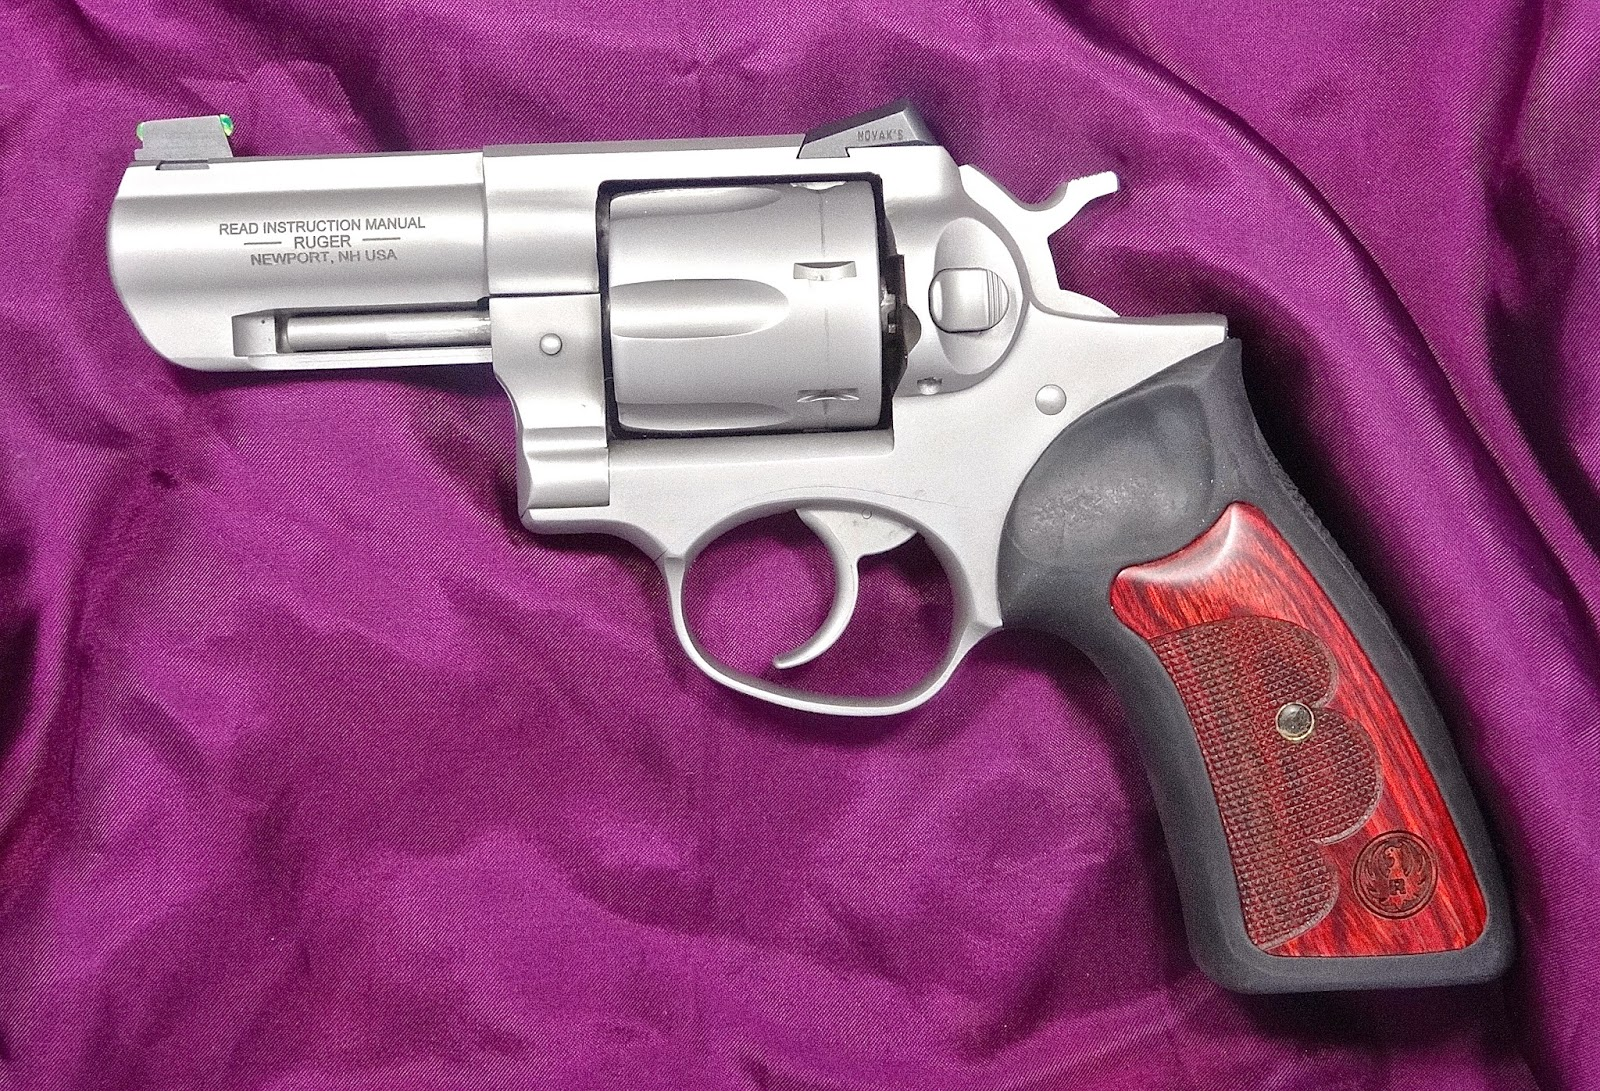 http://averagejoeshandgunreviews.blogspot.com/2015/01/ruger-gp100-wiley-clapp-talo-edition.html